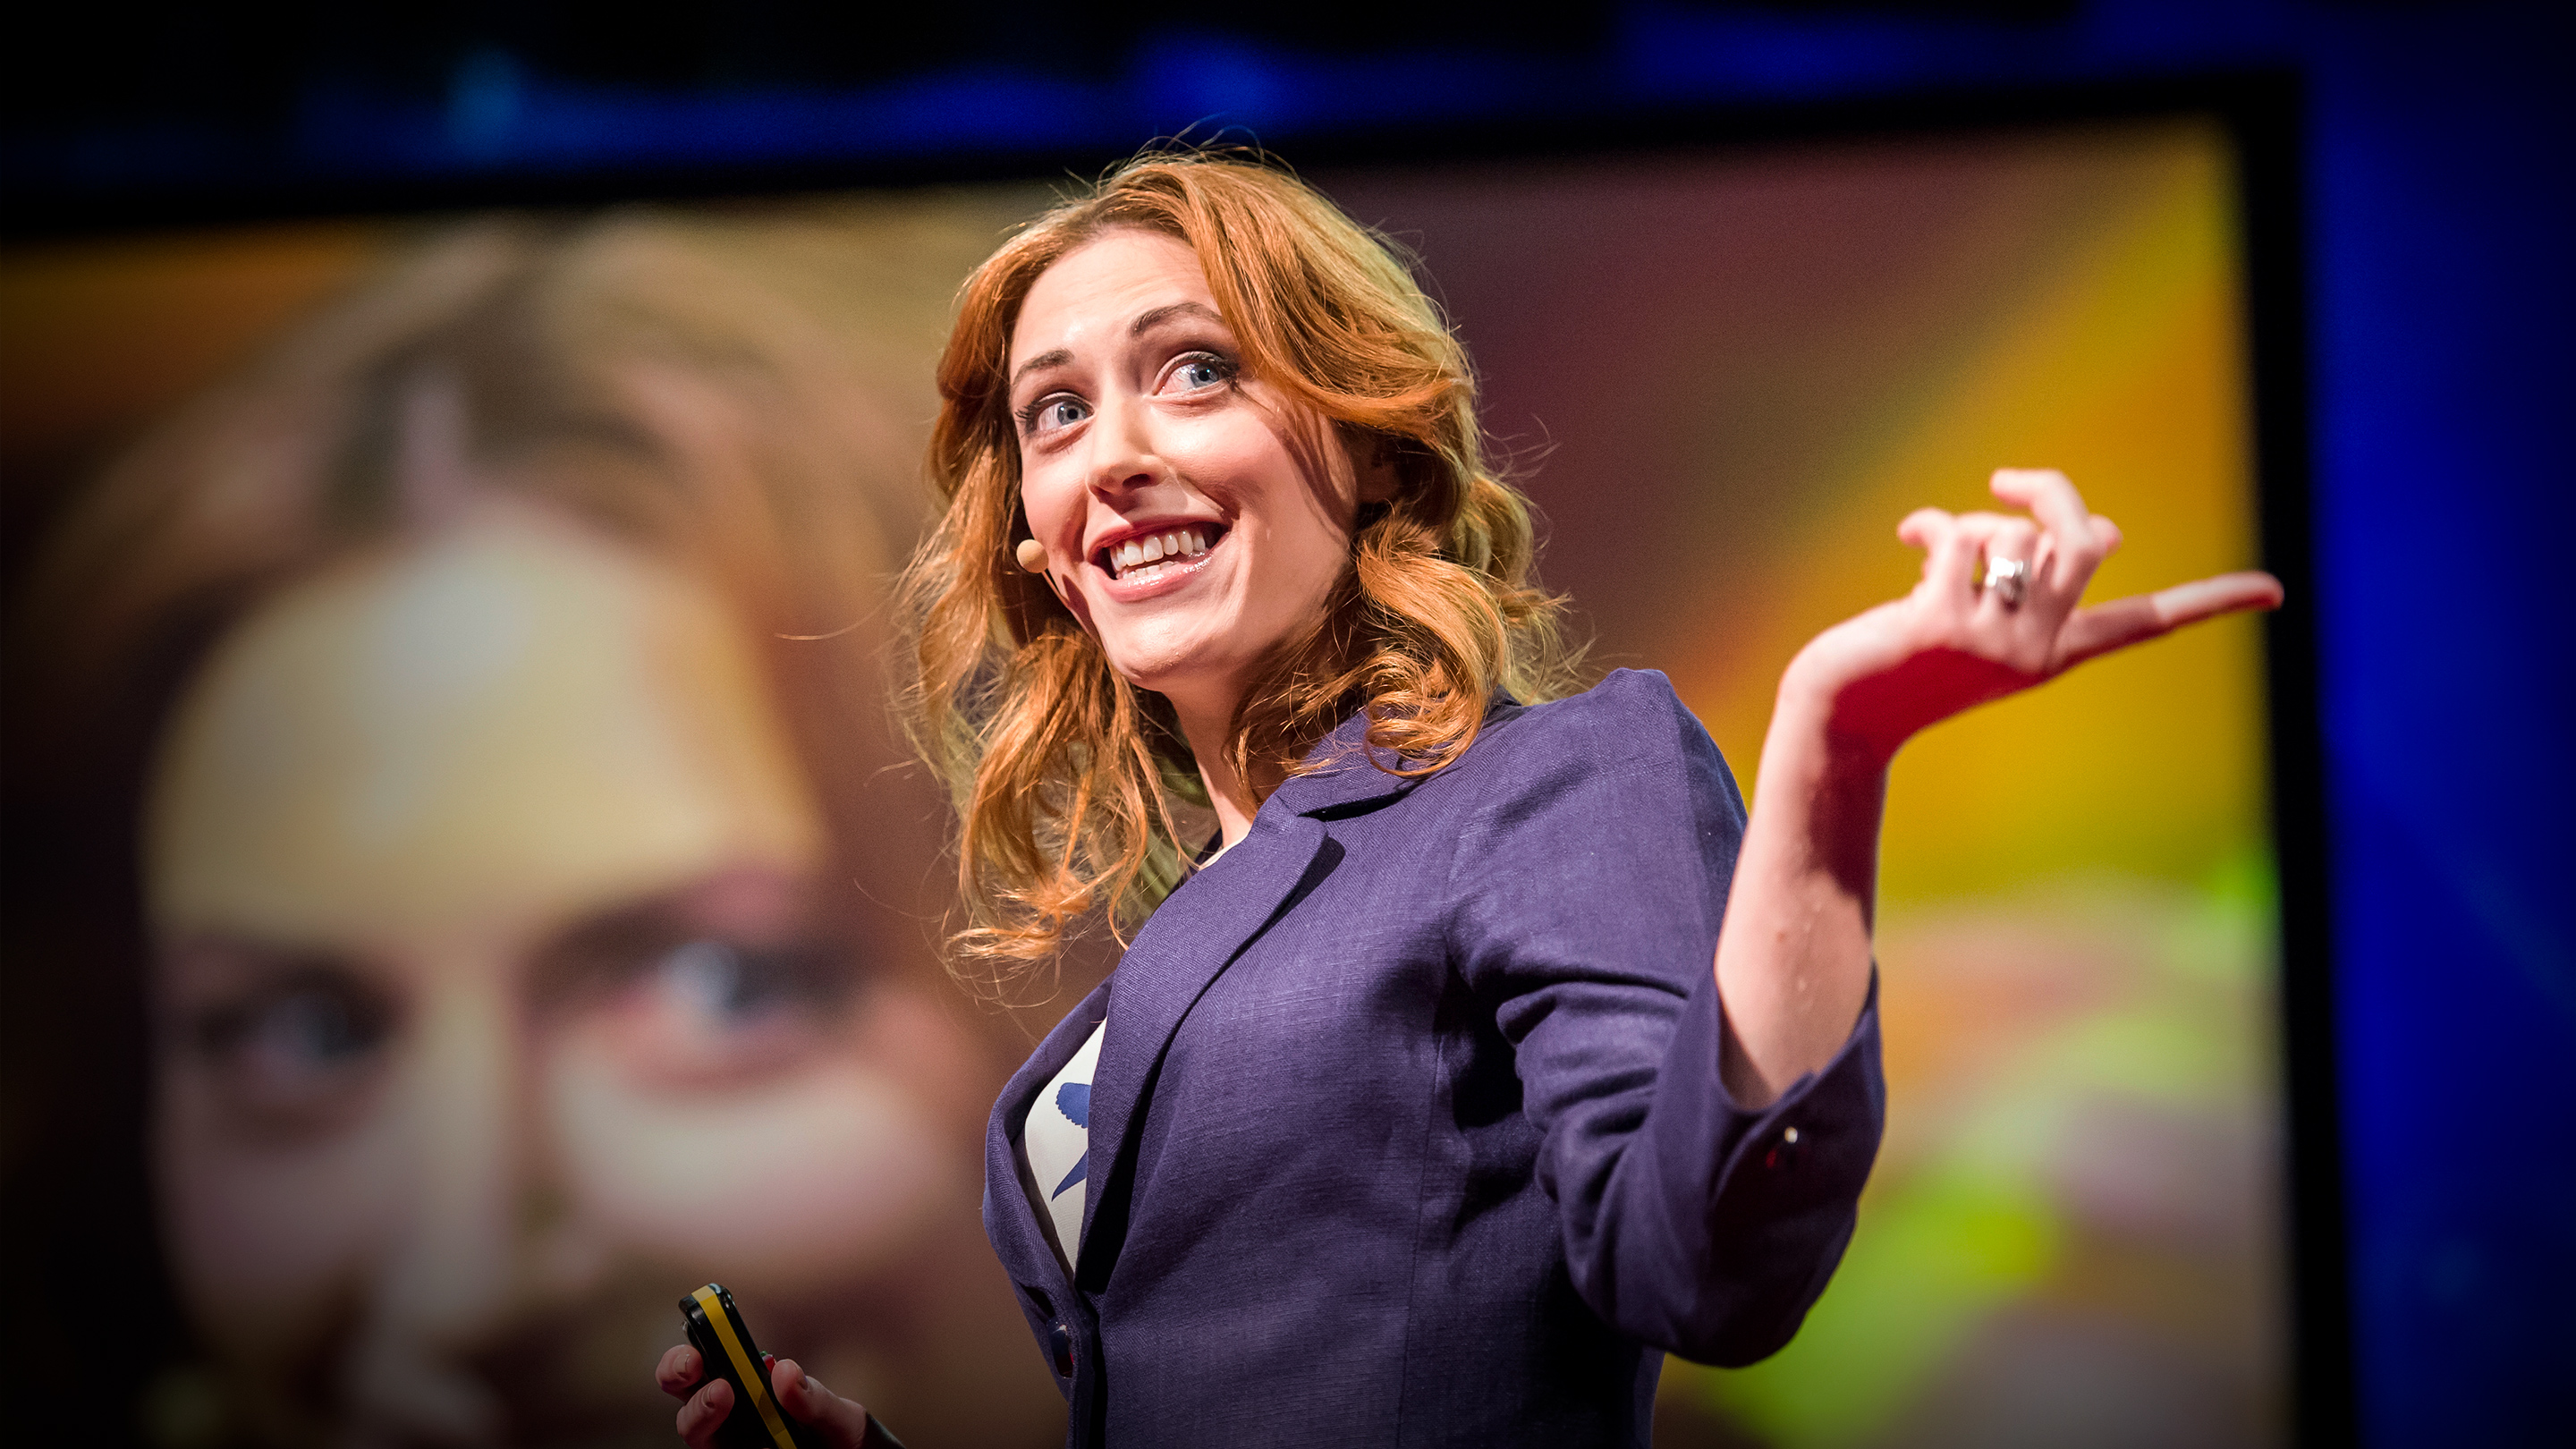 Psychologist Kelly McGonigal giving a TED Talk